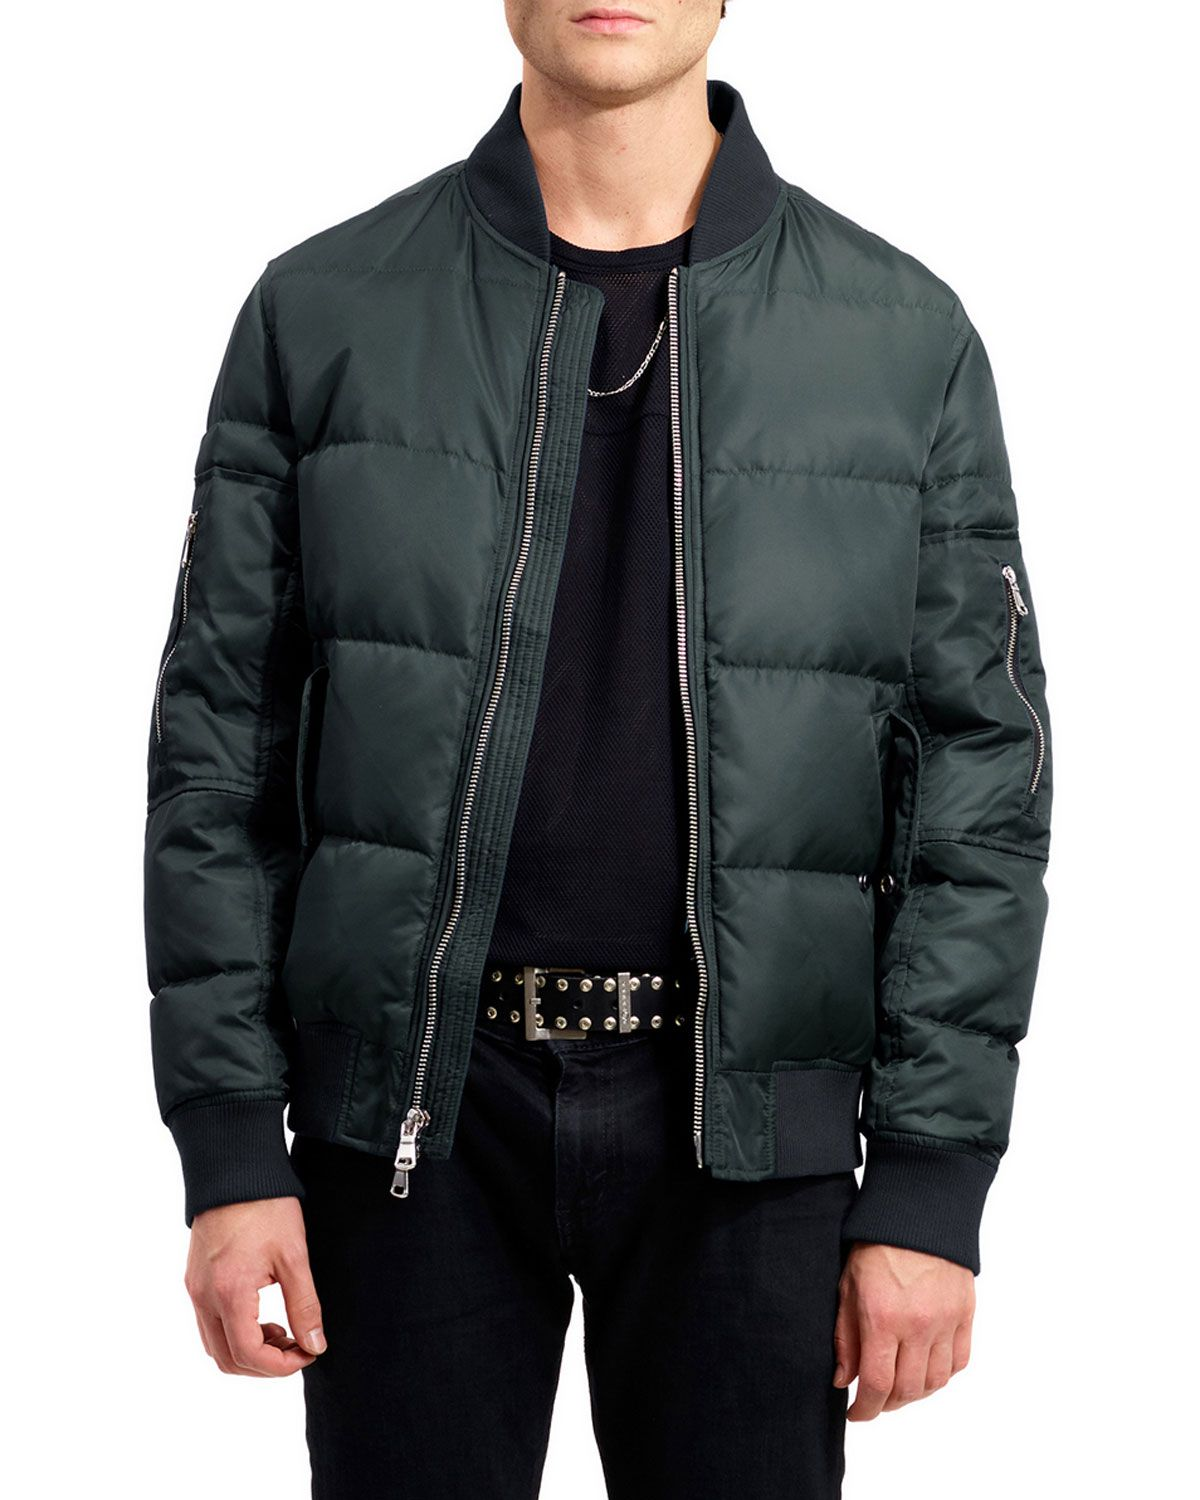 The Very Warm Men S Vandal Quilted Down Bomber Jacket Evergreen Theverywarm Cloth [ 1500 x 1200 Pixel ]